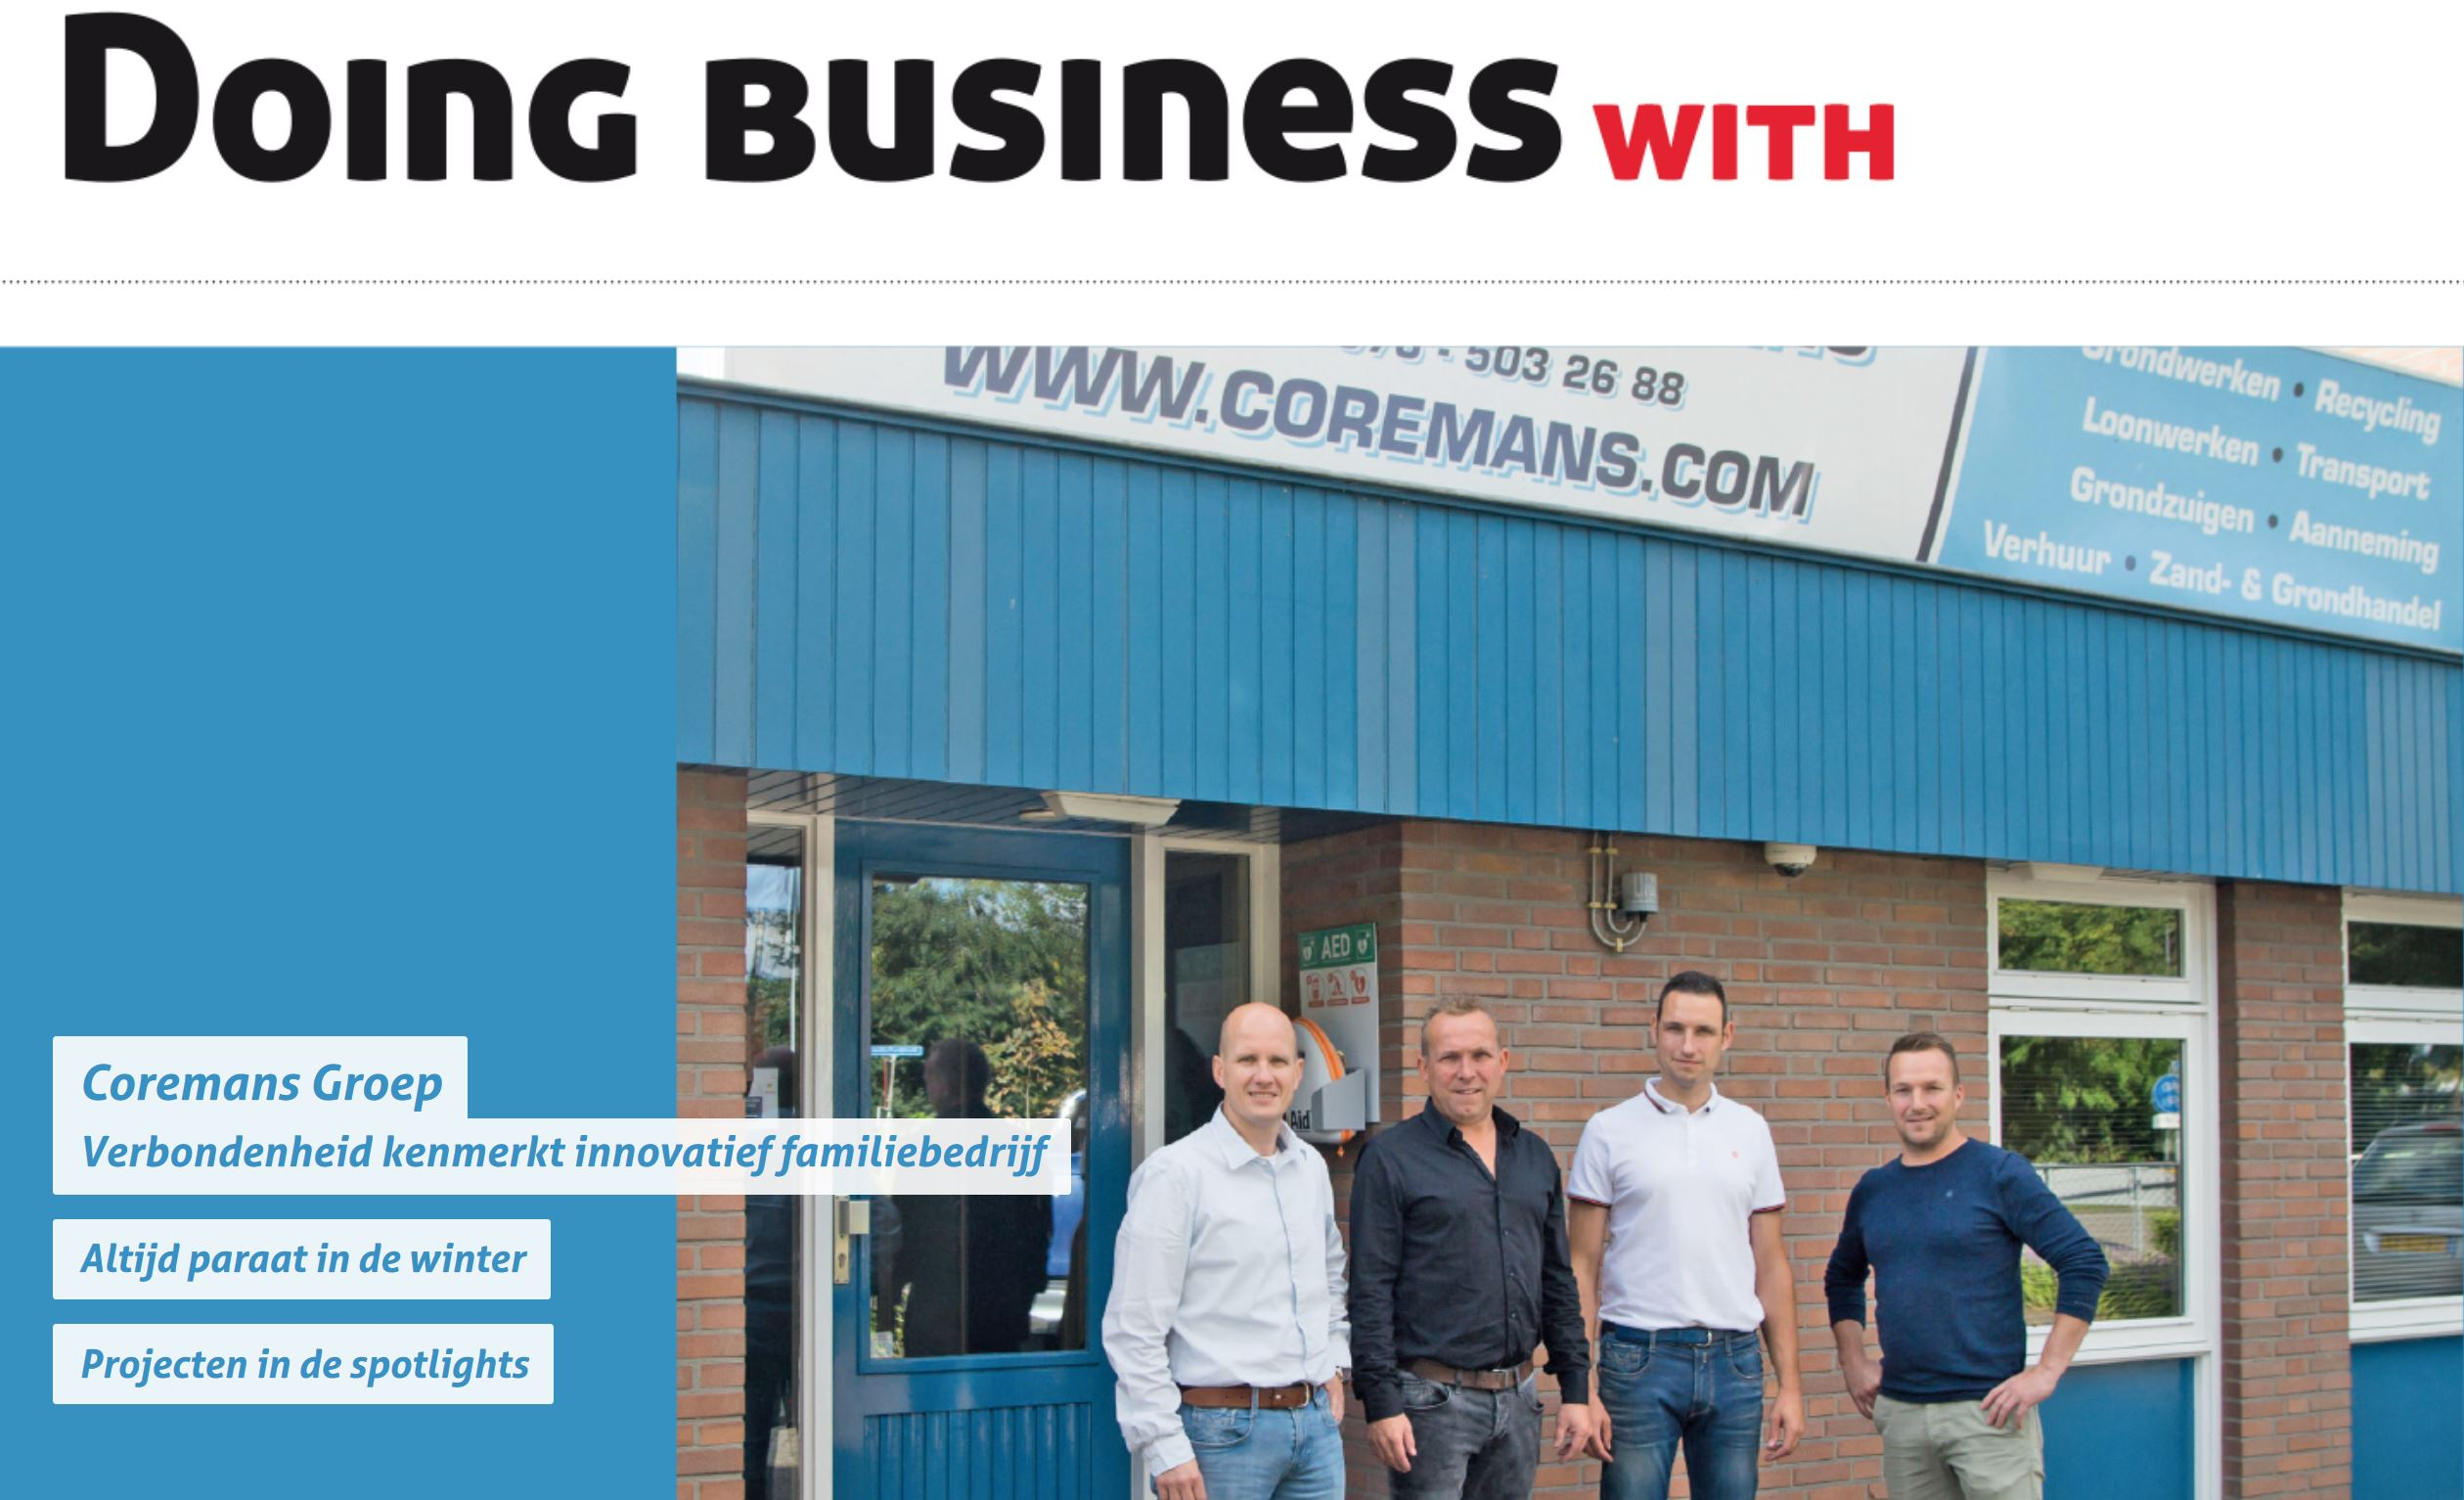 Artikel doing business with